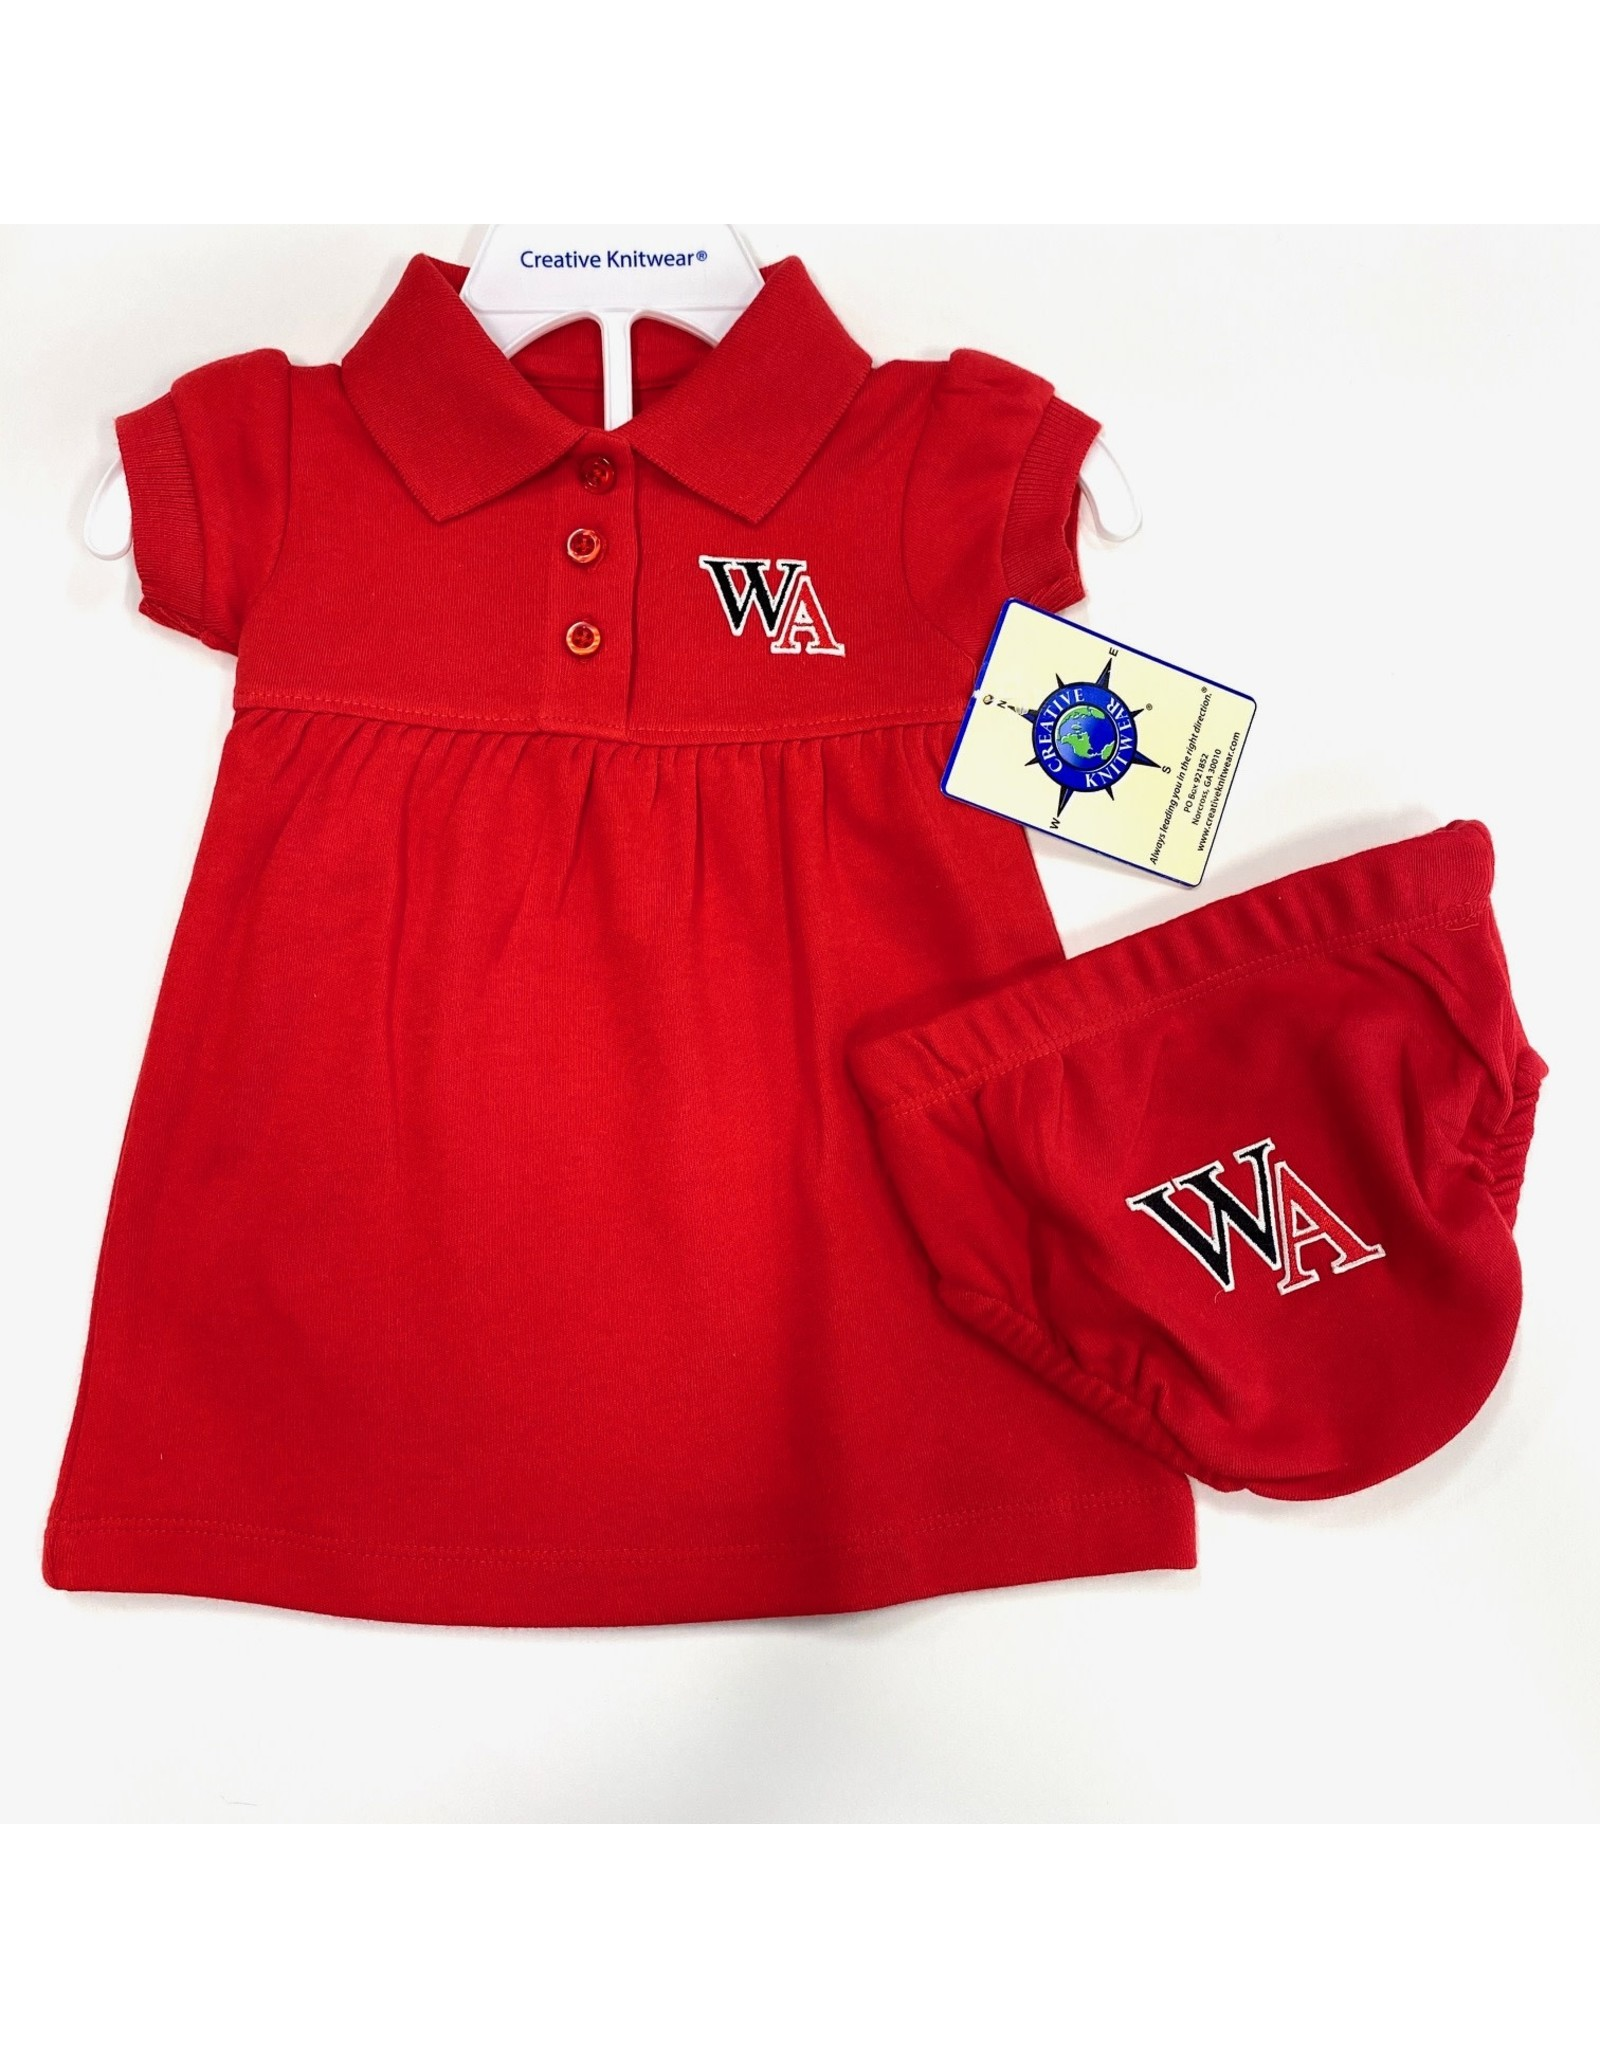 Creative Knitwear Baby Polo Dress with Bloomer by Creative Knitwear